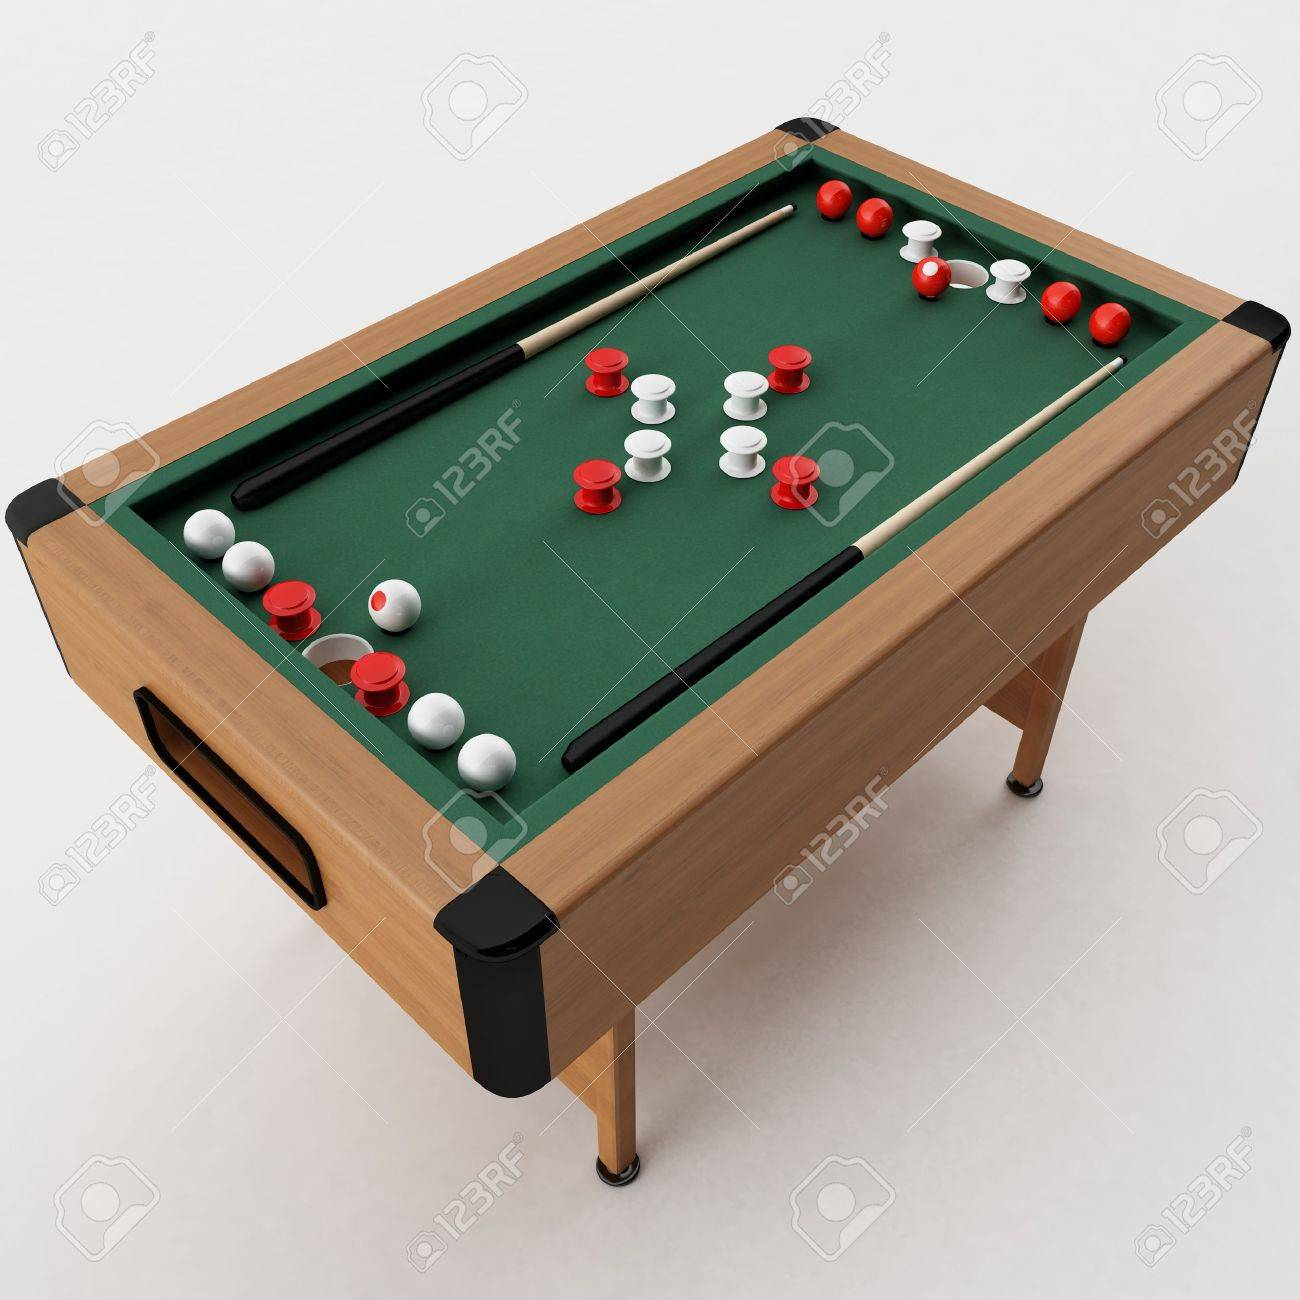 3d rendering of a Bumper Pool Table Stock Photo - 6454961